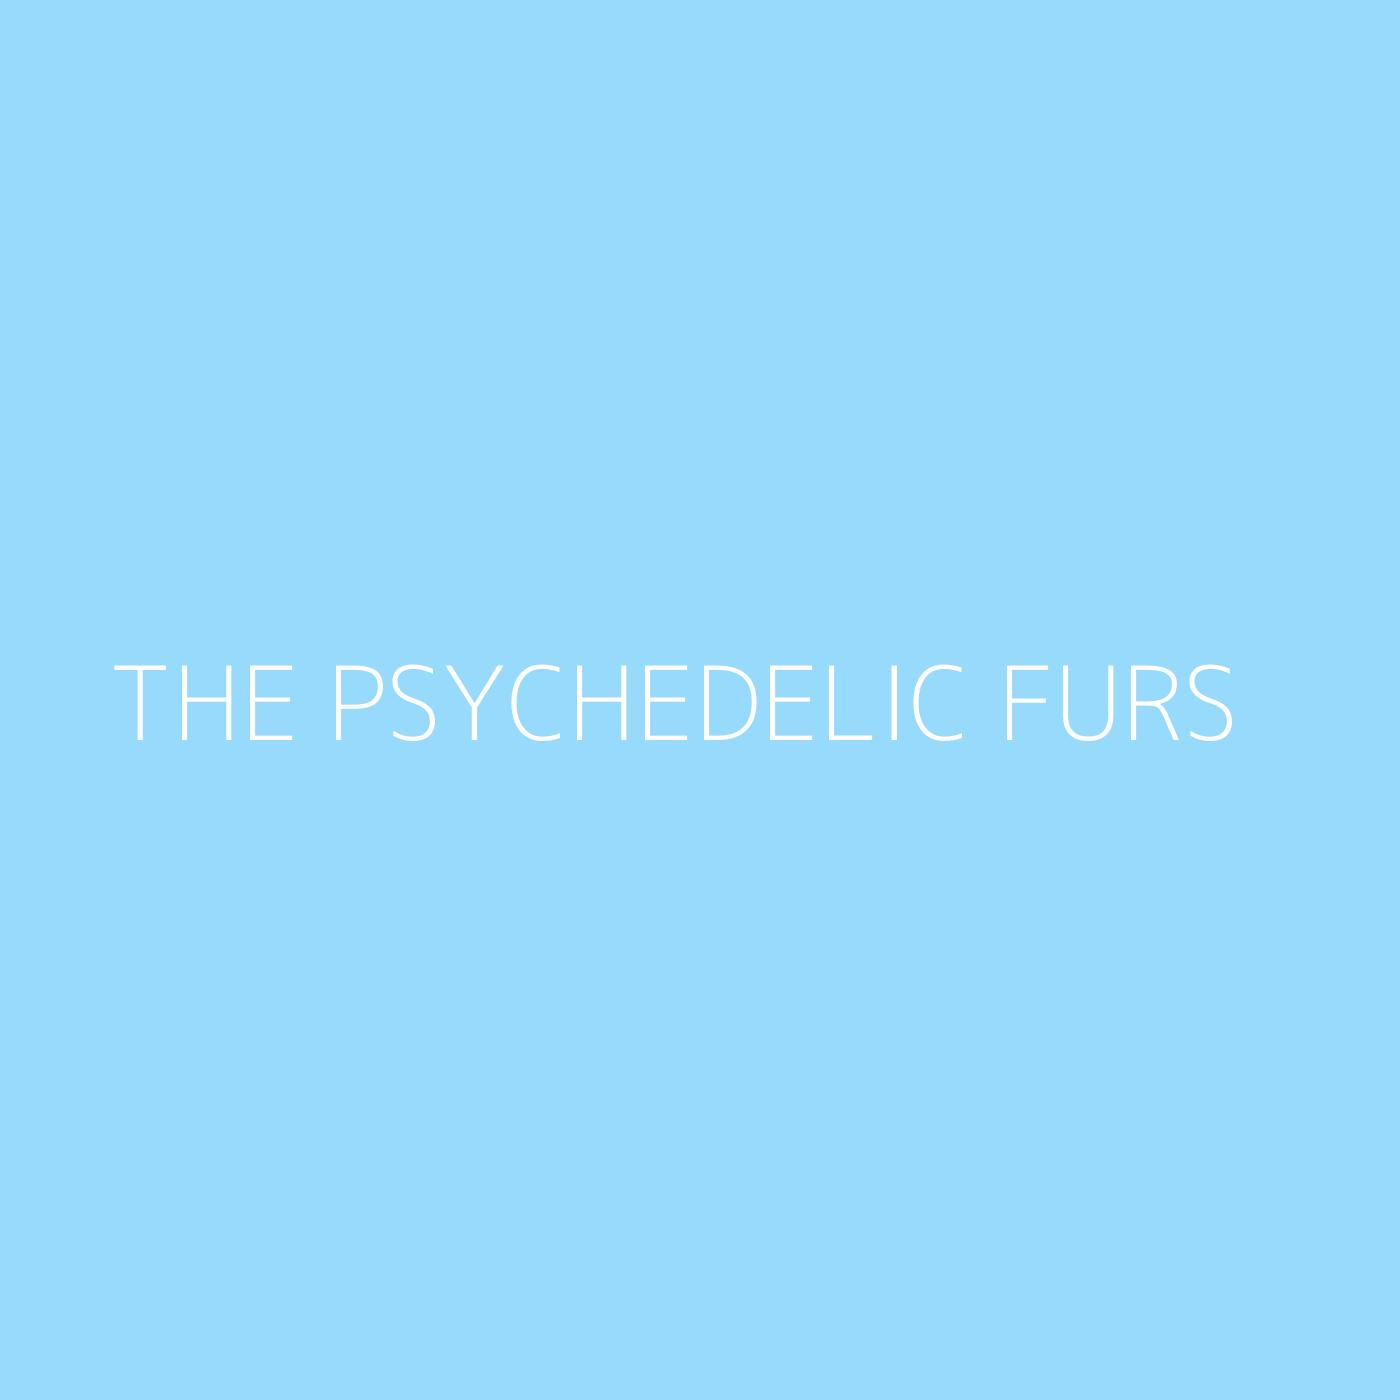 The Psychedelic Furs Playlist Artwork